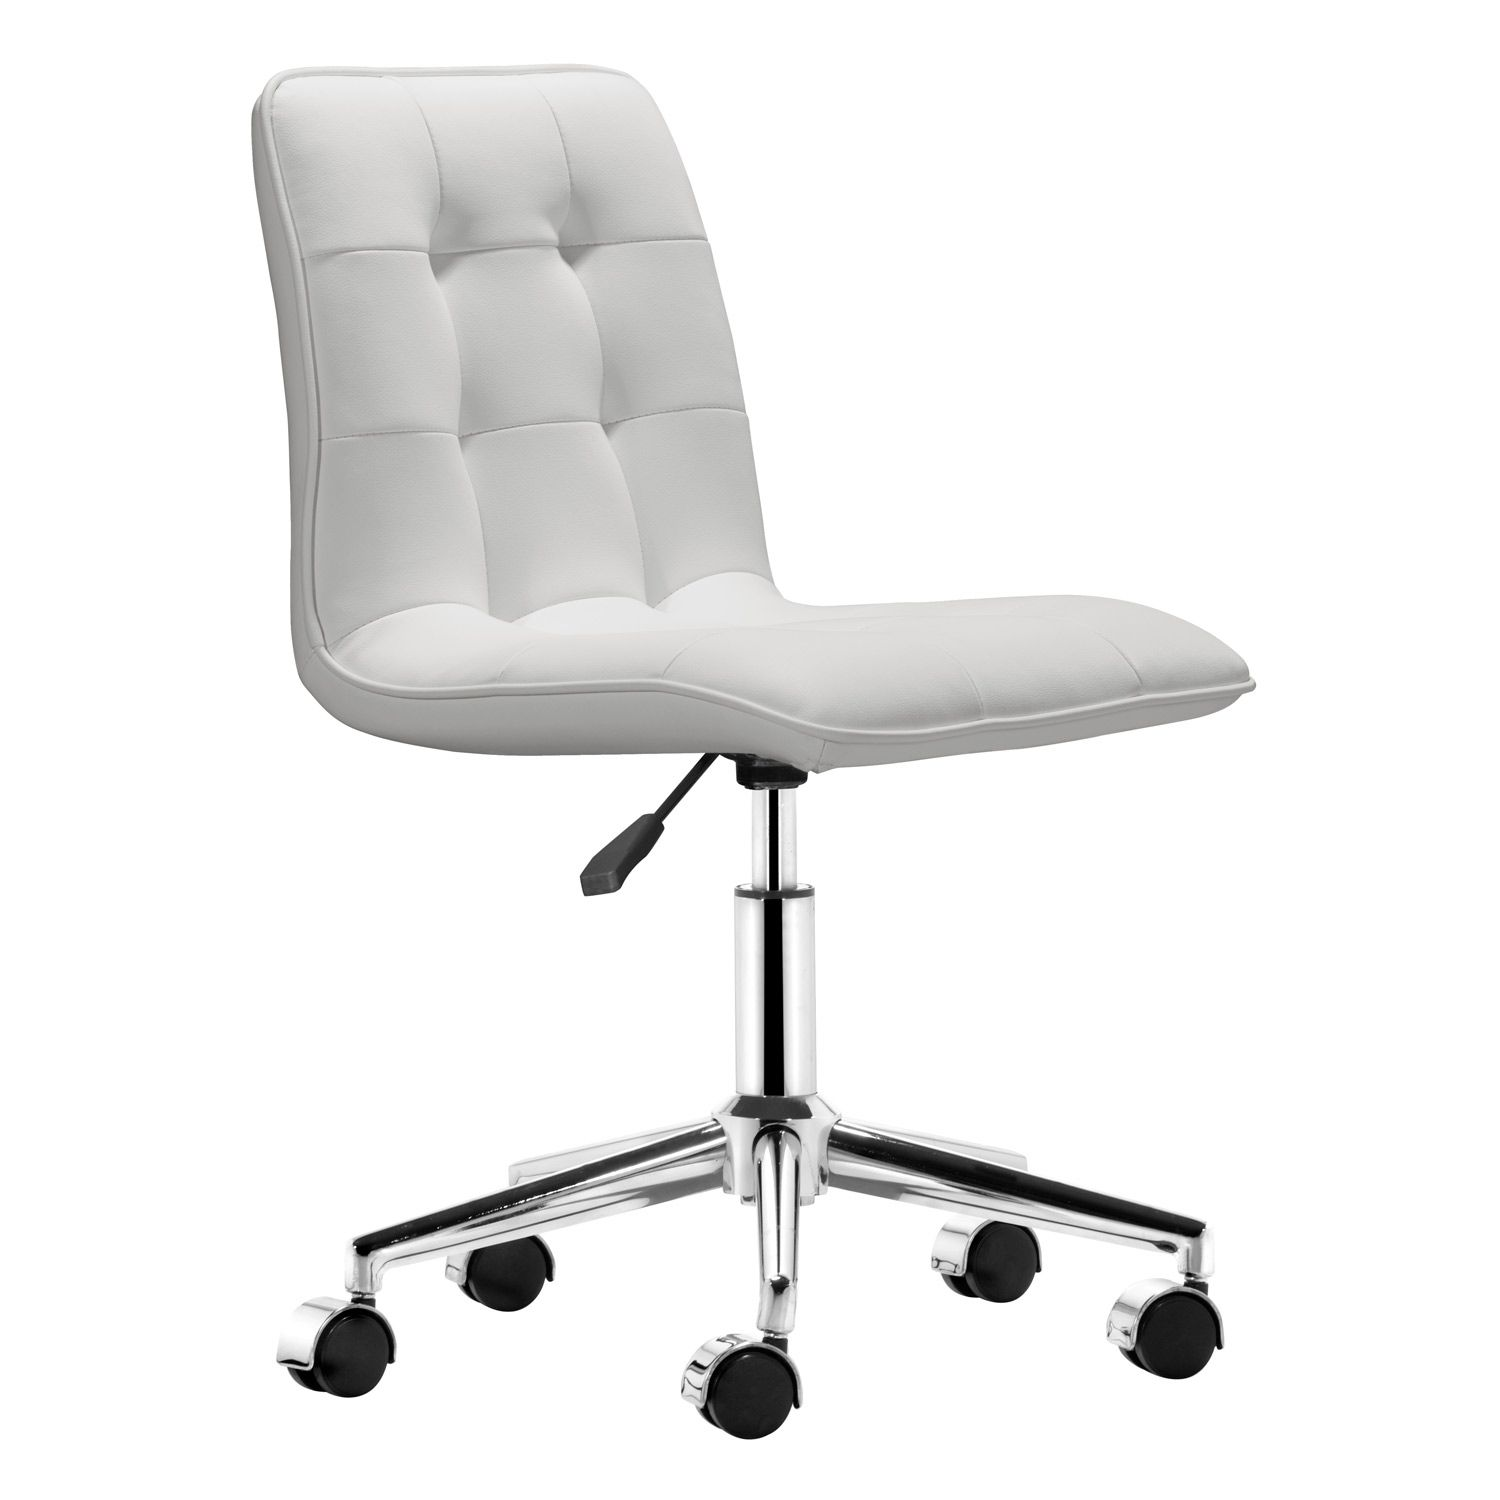 scout white office chair @zinc_door | house stuff | pinterest